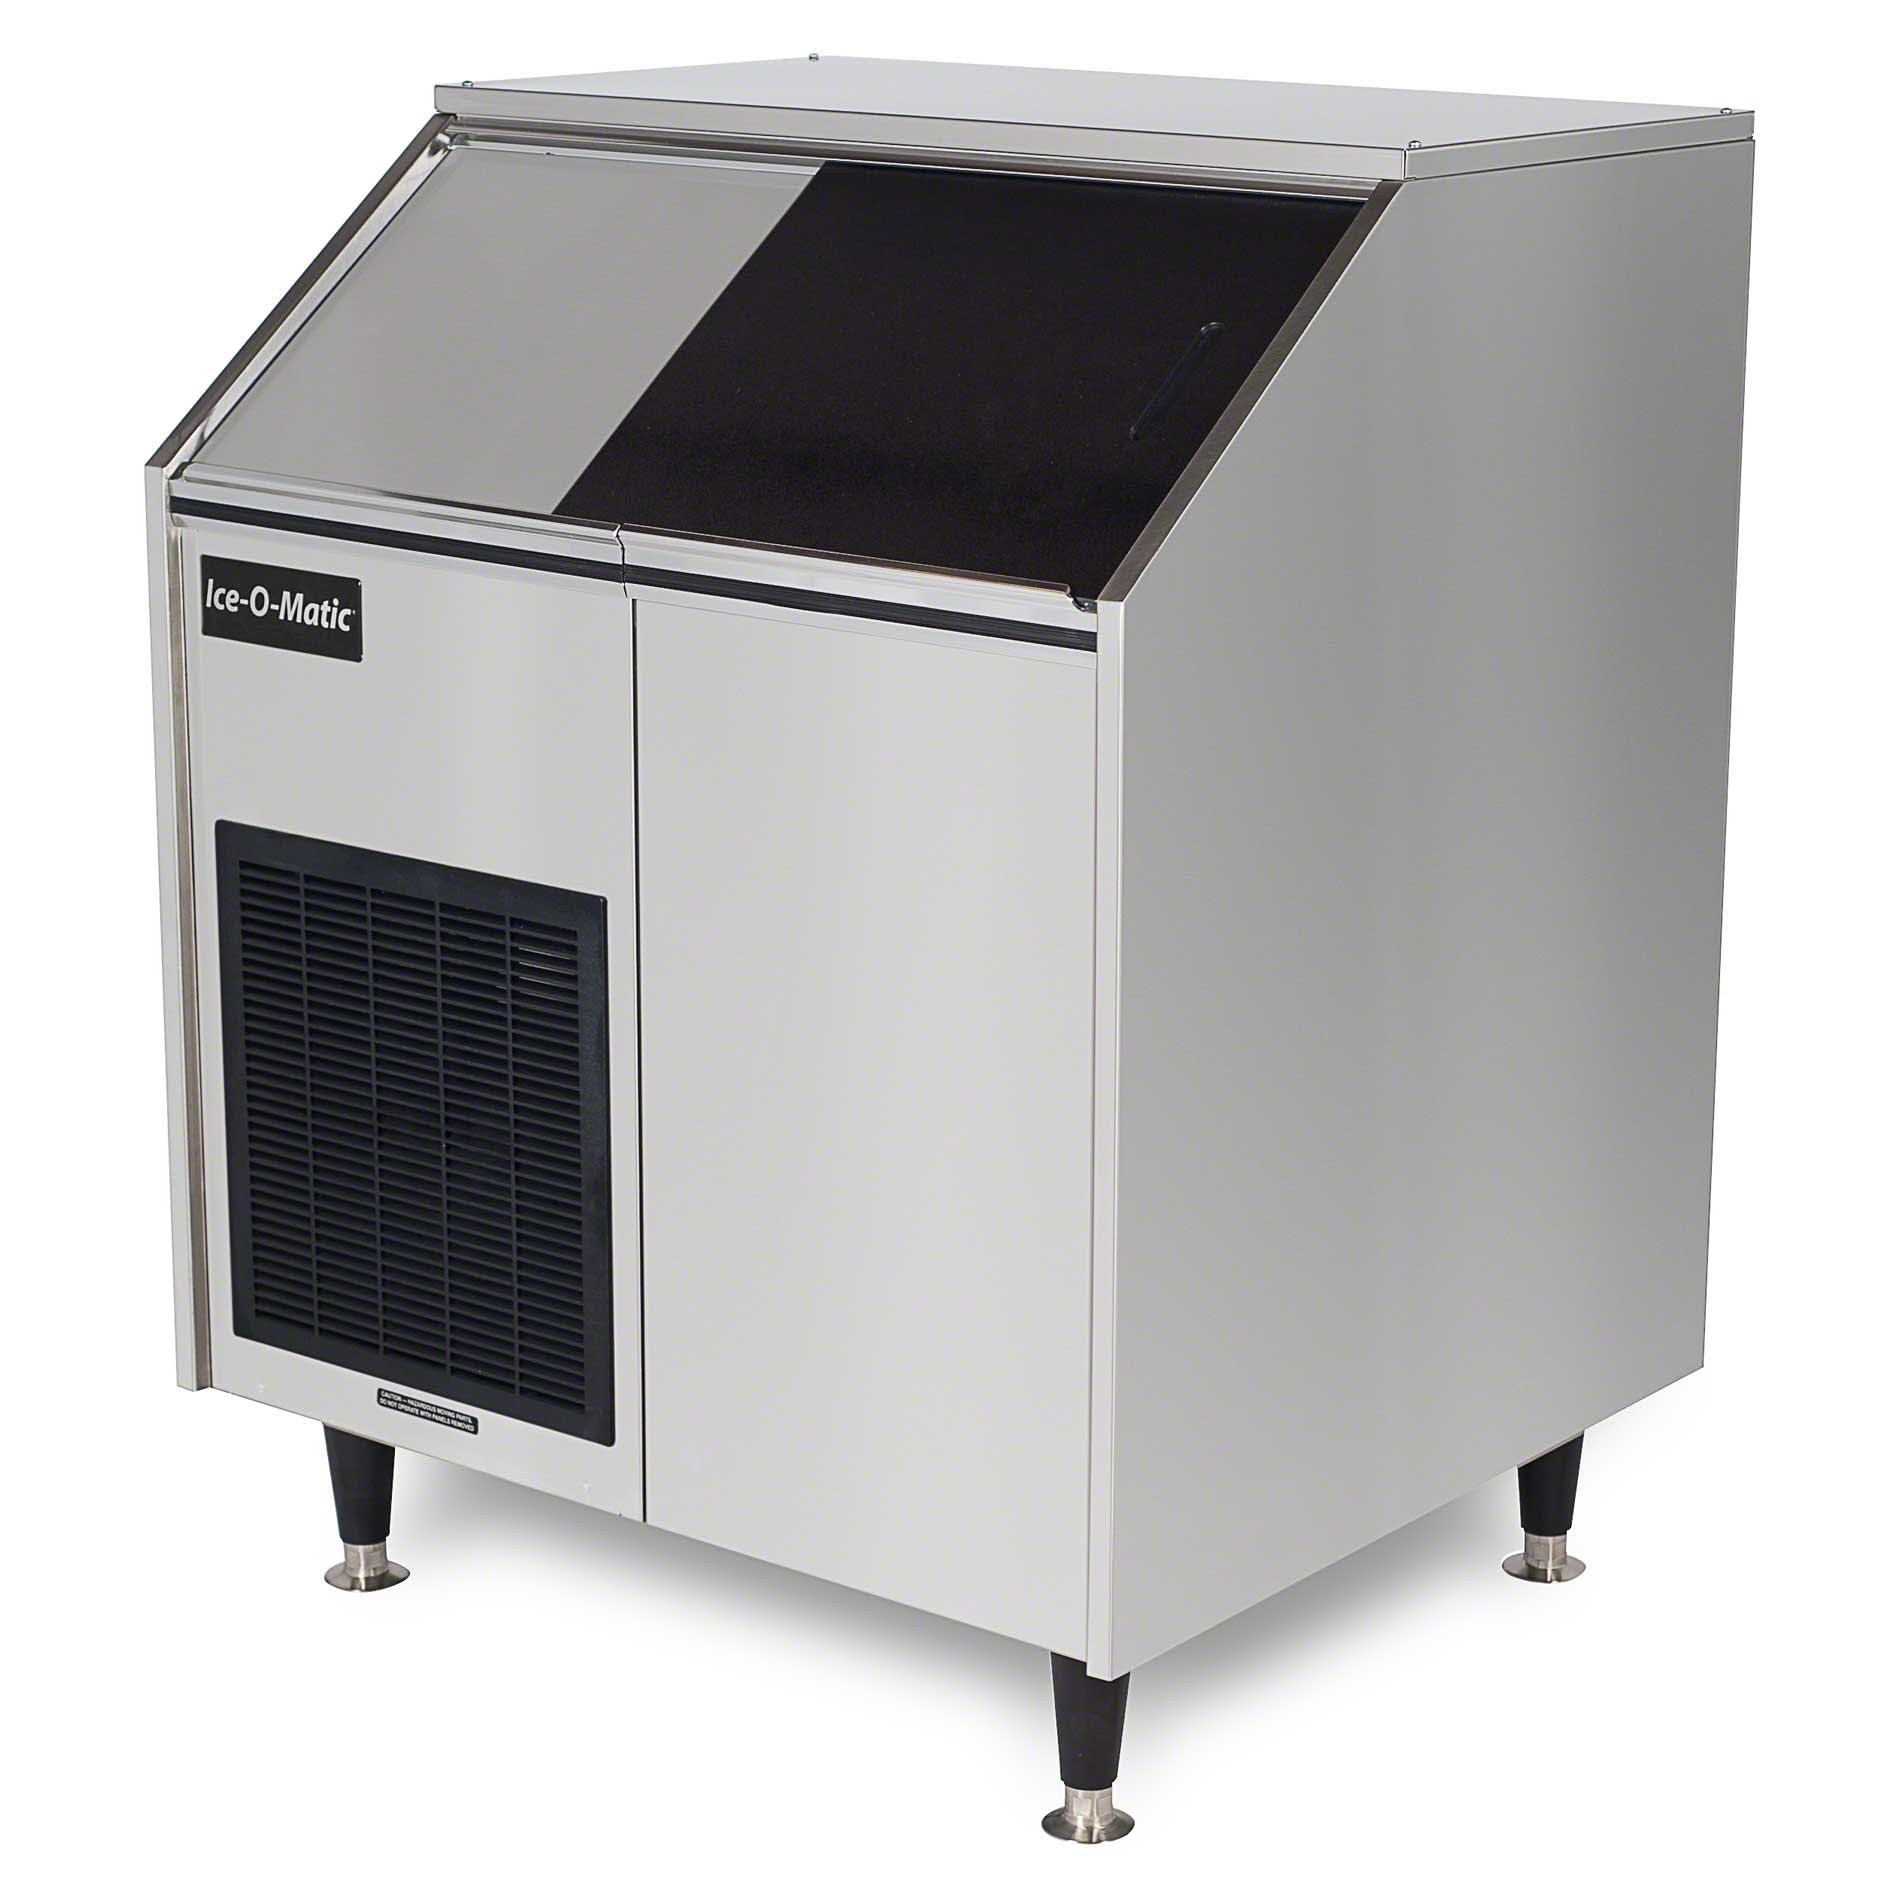 Ice-O-Matic - EF250A32S 400 lb Self-Contained Flake Ice Machine Ice machine sold by Food Service Warehouse